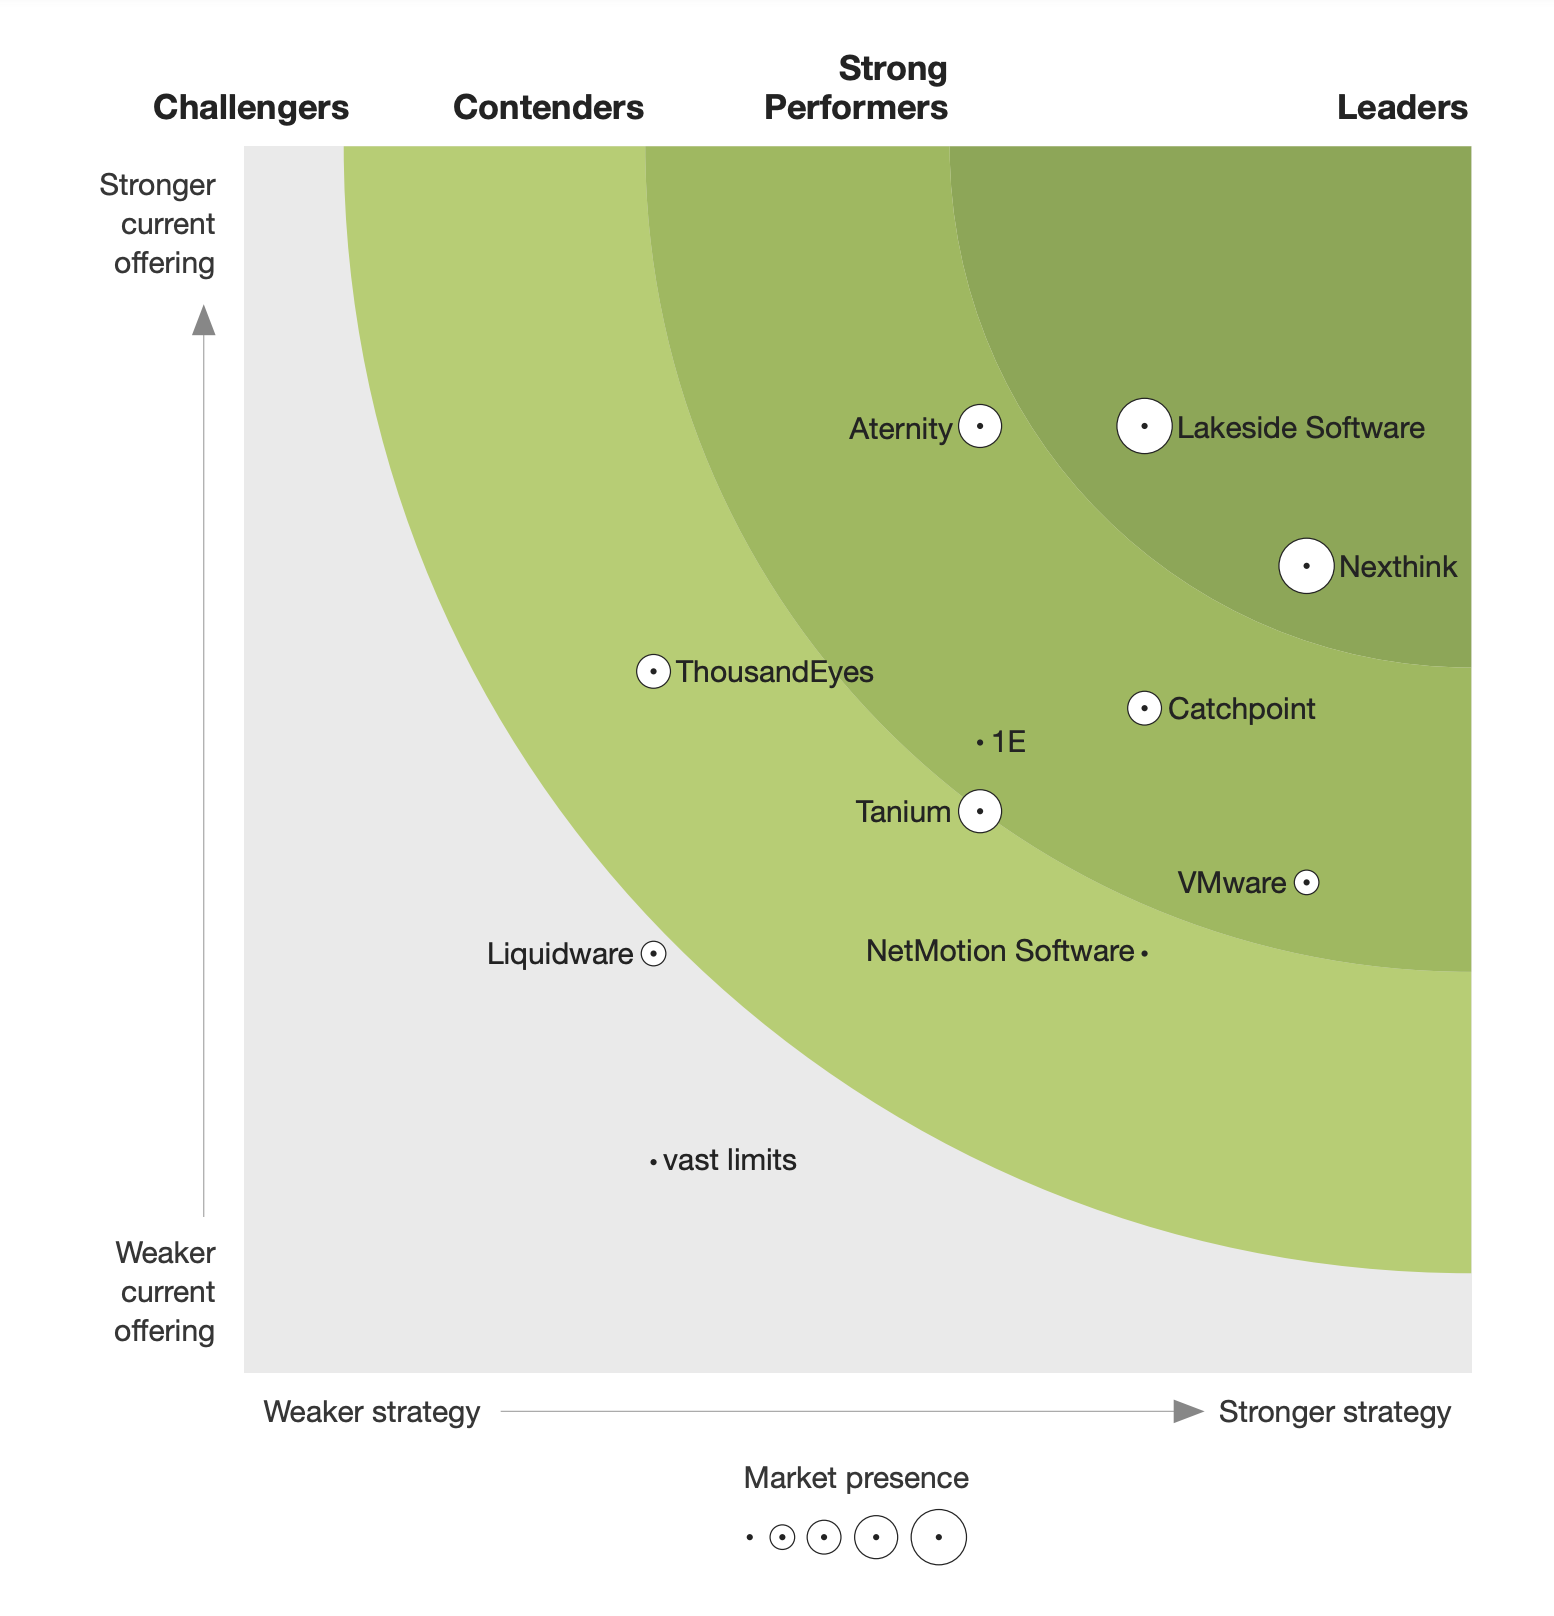 Catchpoint-strong-performer-on-forrester-end-user-experience-management-report